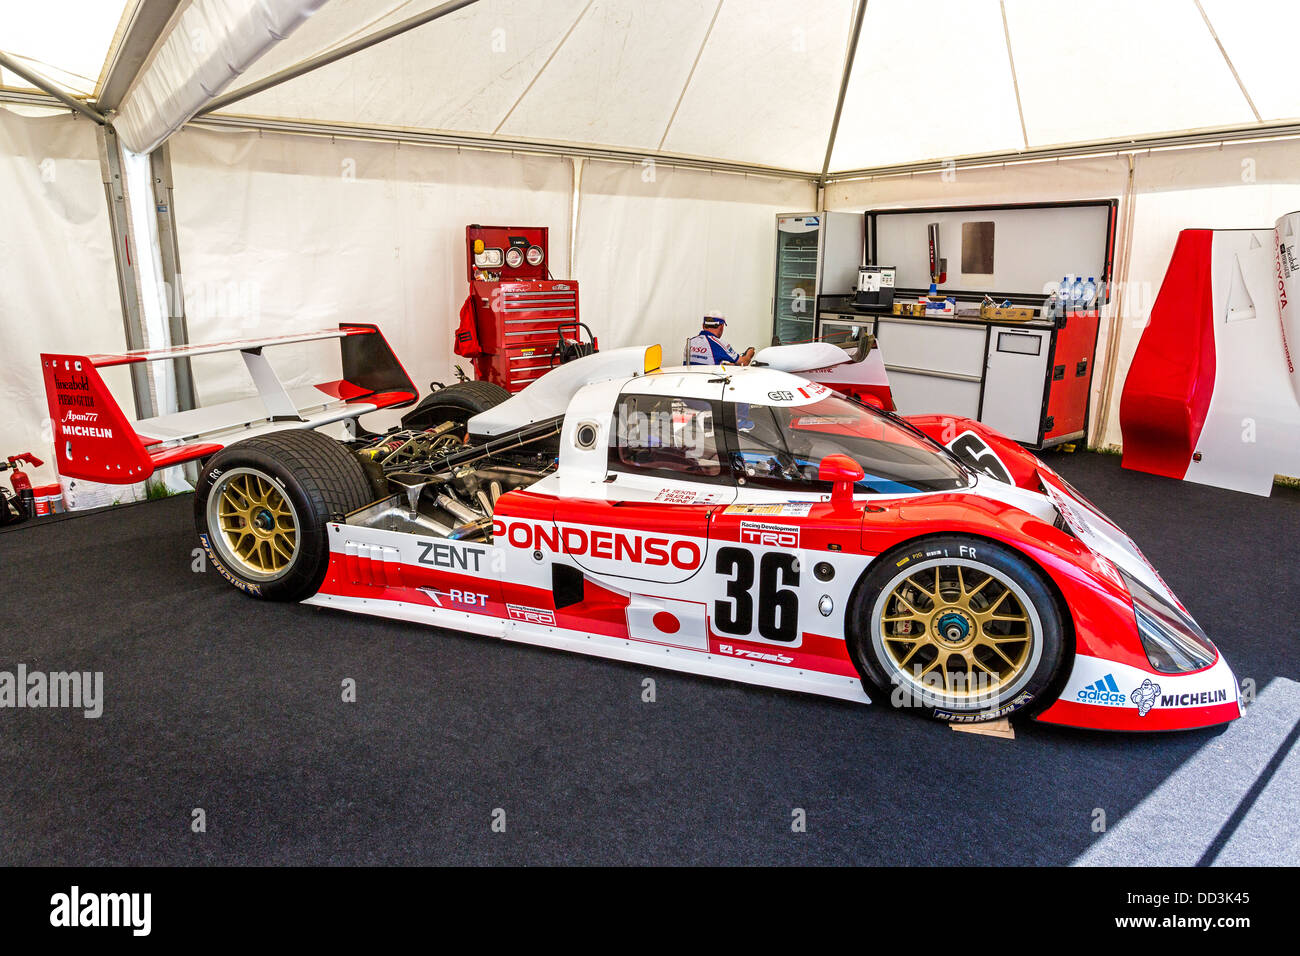 1992 toyota ts010 le mans racer in the paddock garage at for Garage automobile le mans